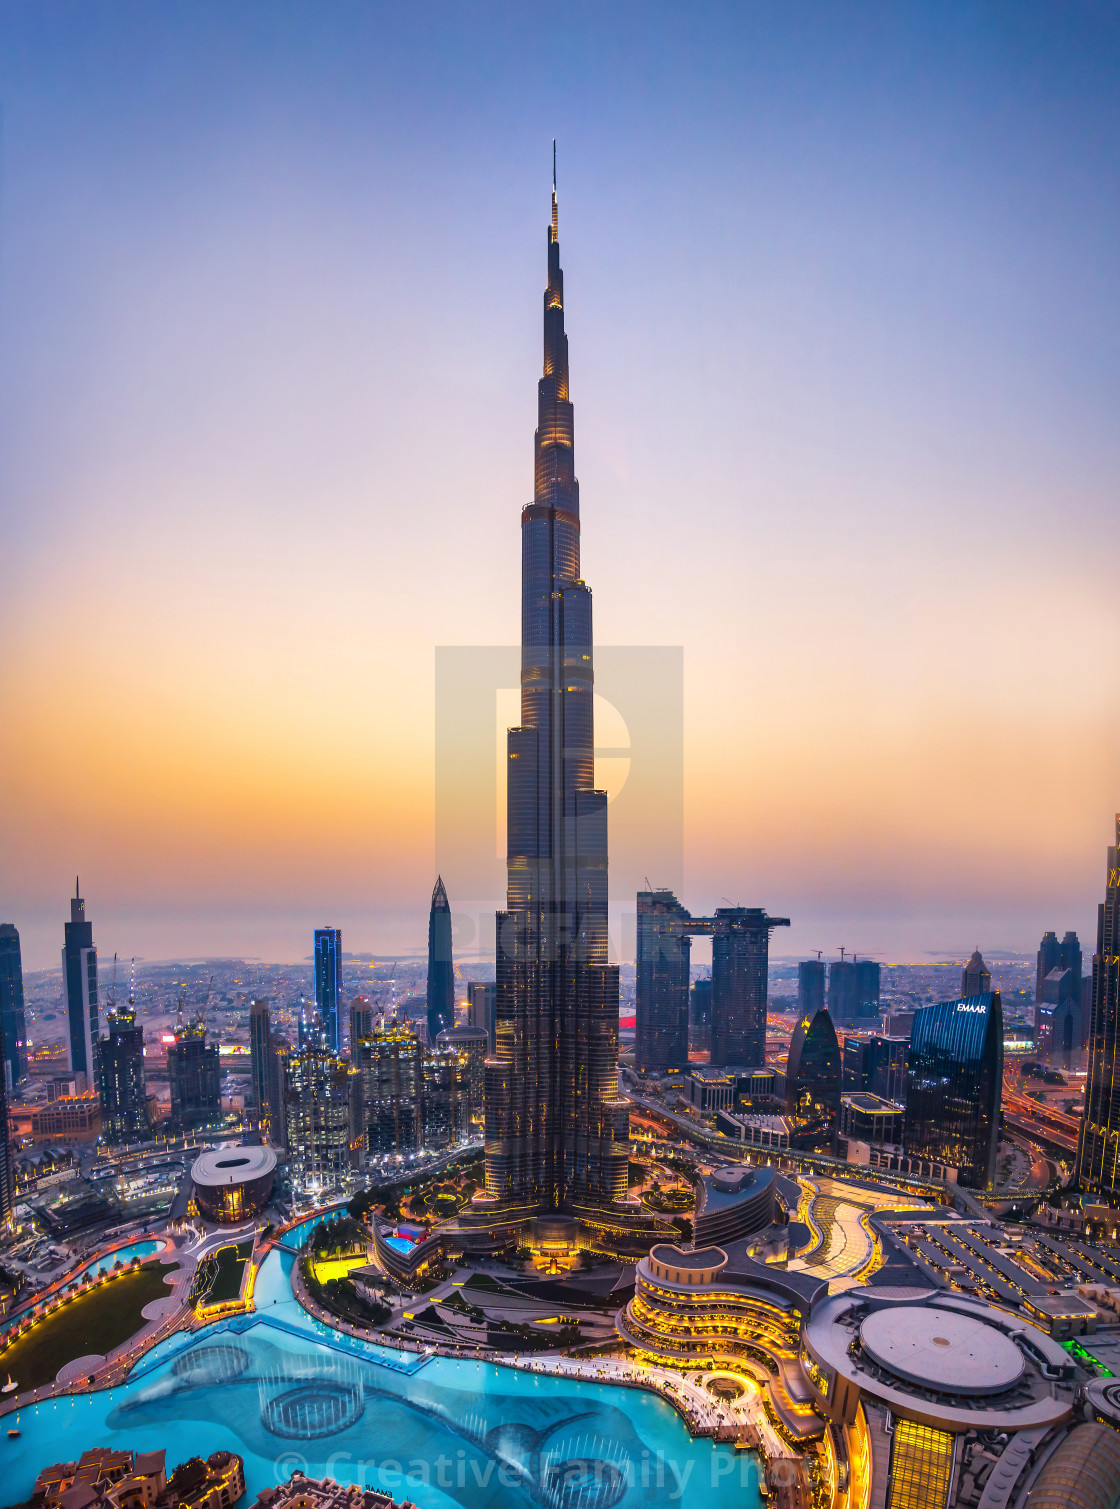 """""""Burj khalifa rising above Dubai mall and fountain surrounded by modern buildings top view"""" stock image"""